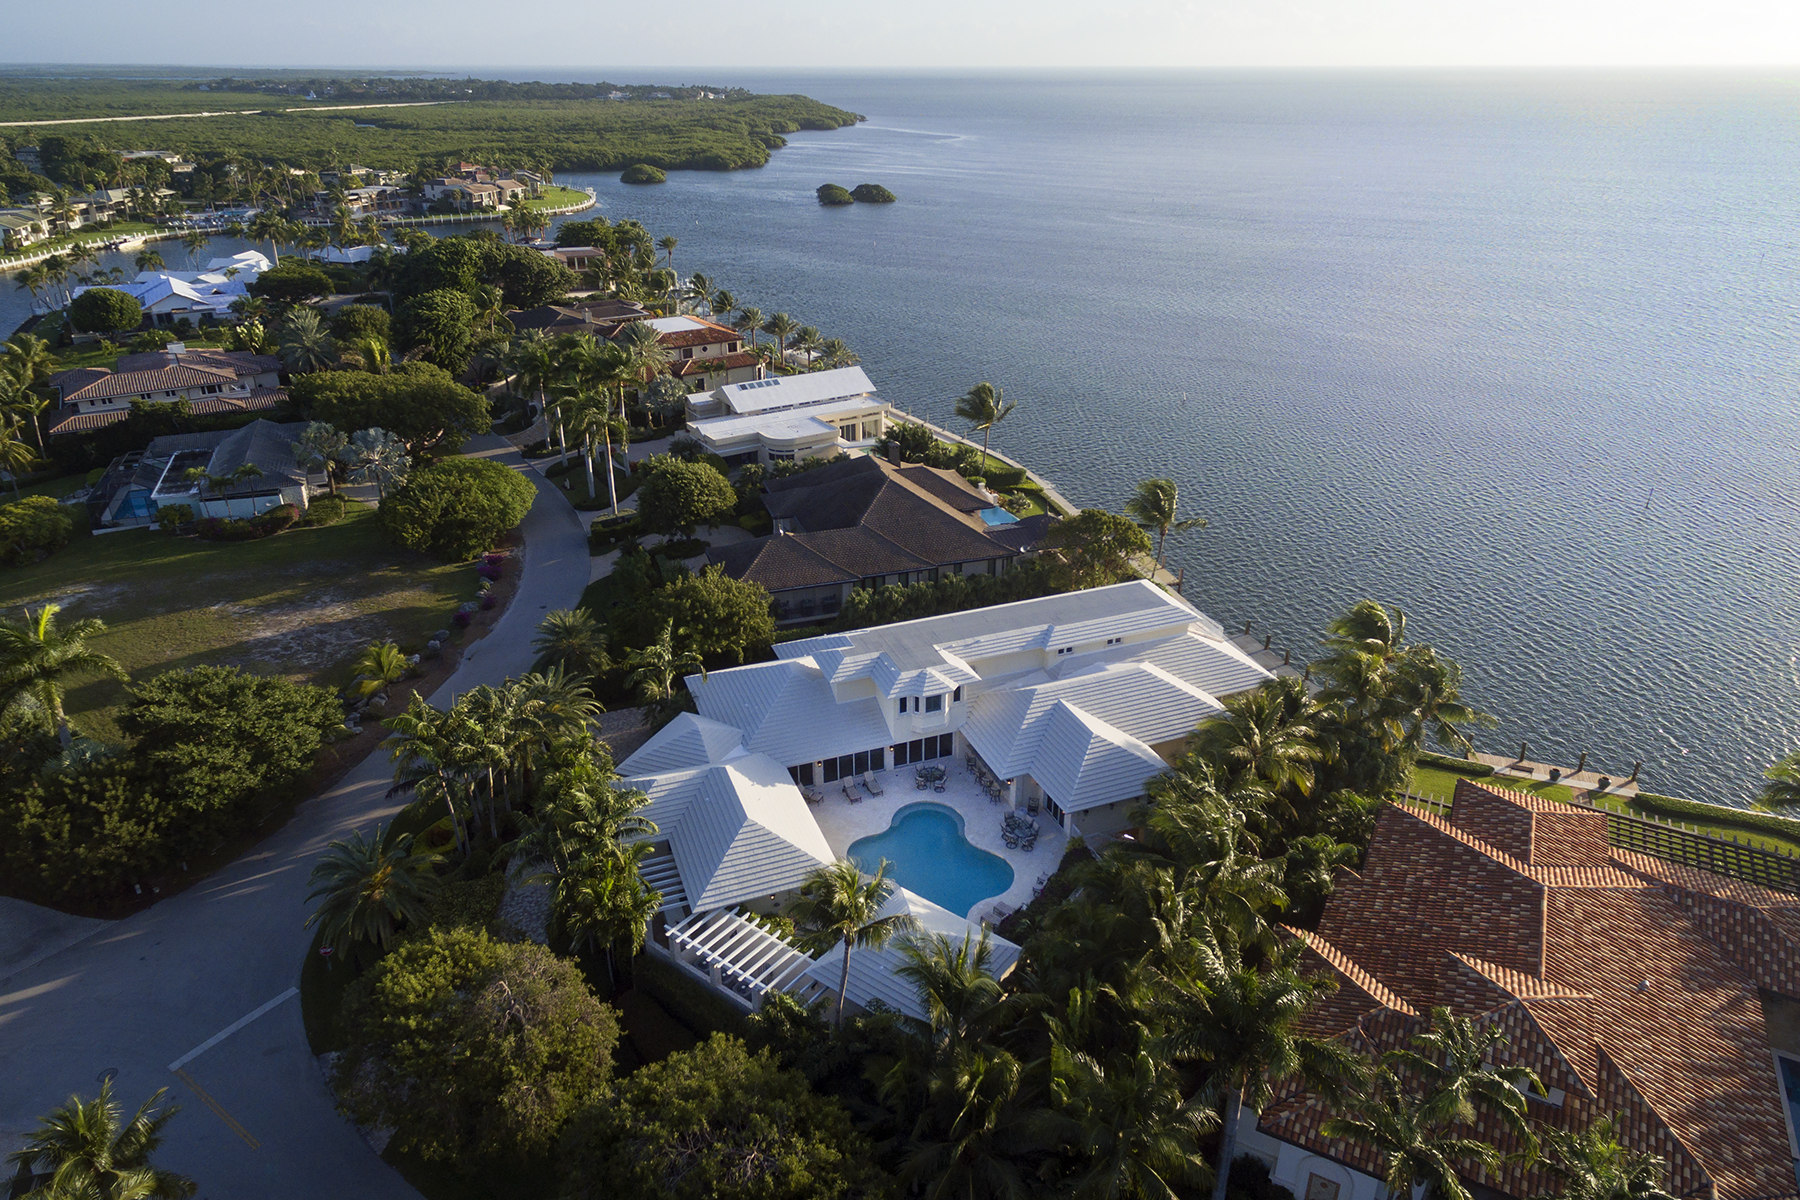 Vivienda unifamiliar por un Venta en Extraordinary Oceanfront Home at Ocean Reef 24 Angelfish Cay Drive, Ocean Reef Community, Key Largo, Florida, 33037 Estados Unidos